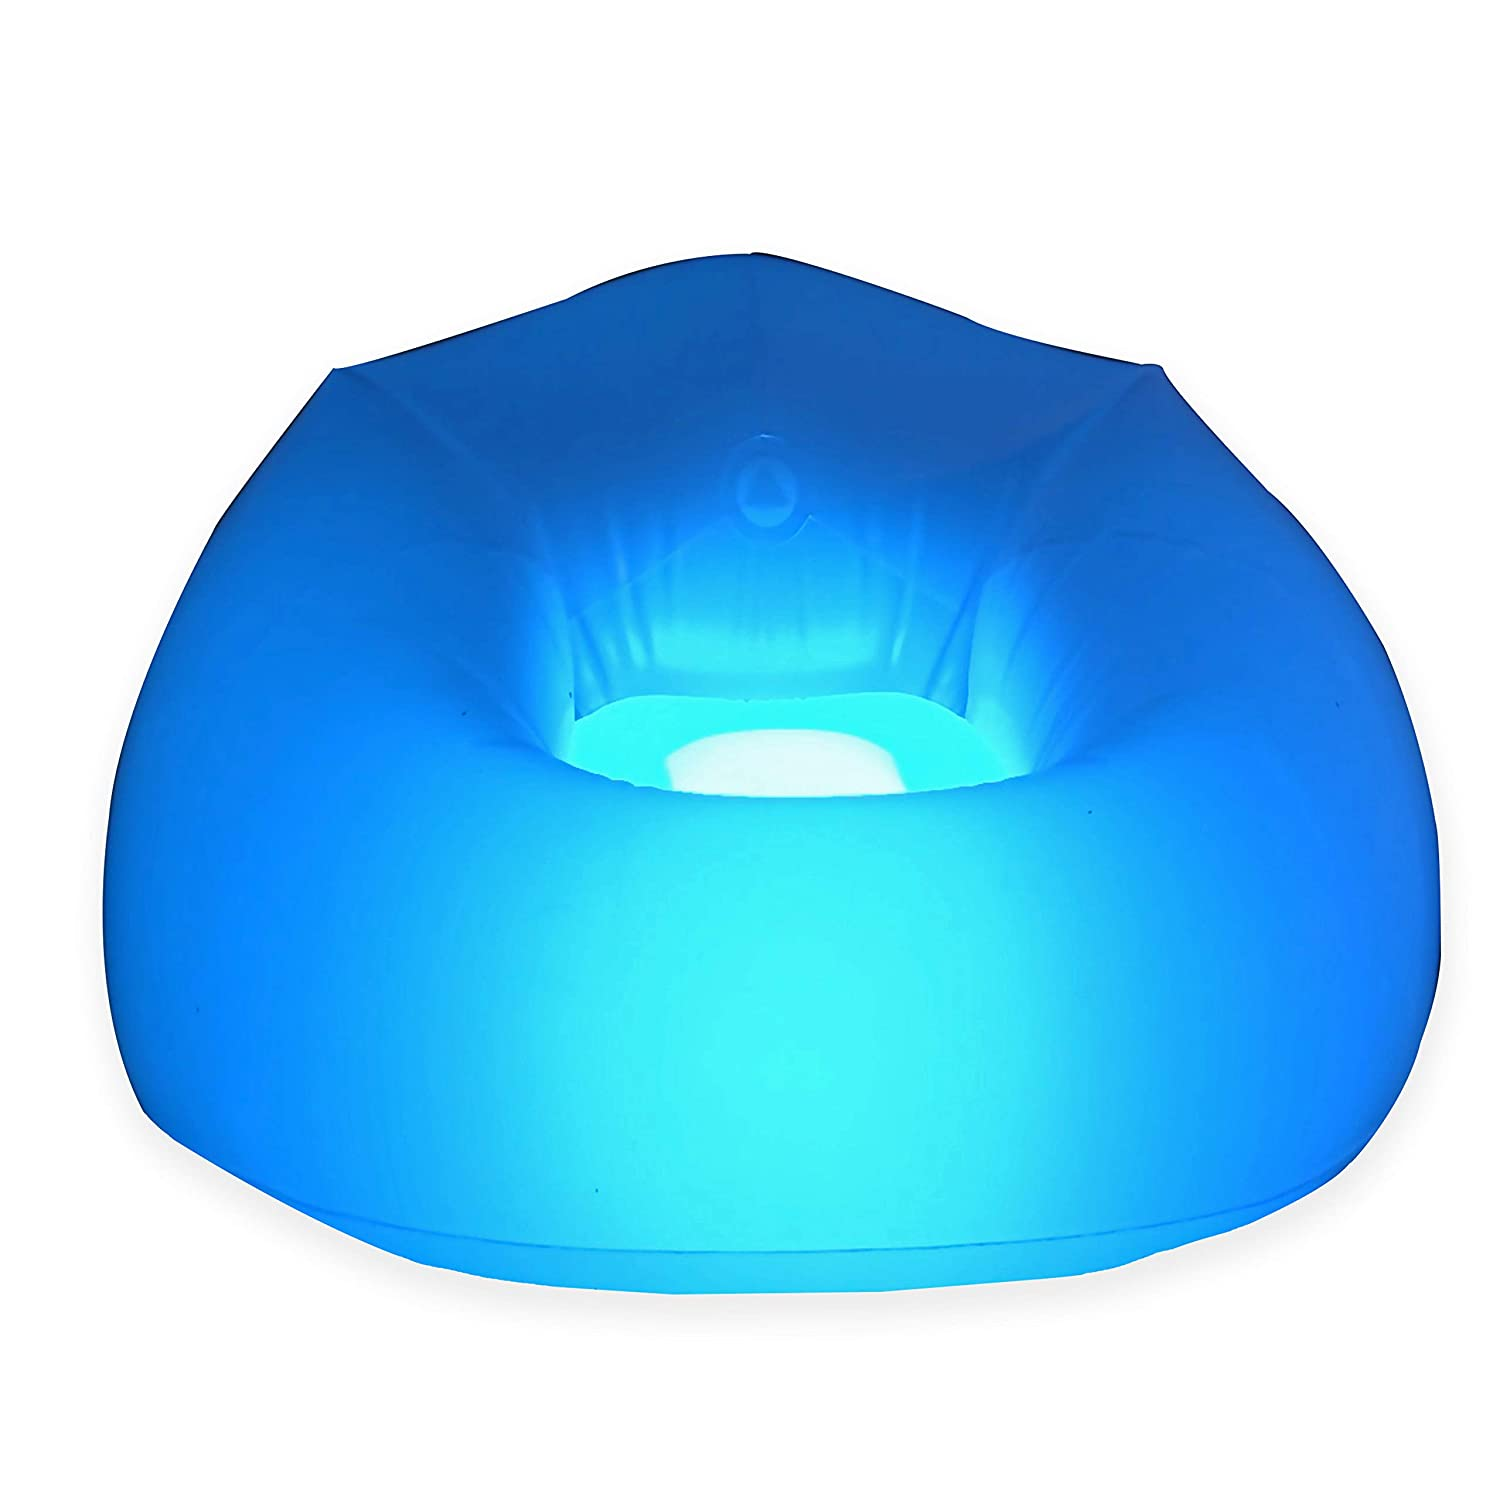 BloChair Illuminated LED Beanless Inflatable Chair – Measures 40 x43 x 30 – Glowing Chair with LED Light – Bedroom or Dorm Room Furniture Decoration- Gaming Chair – Collector s Item- Blo Chair Air